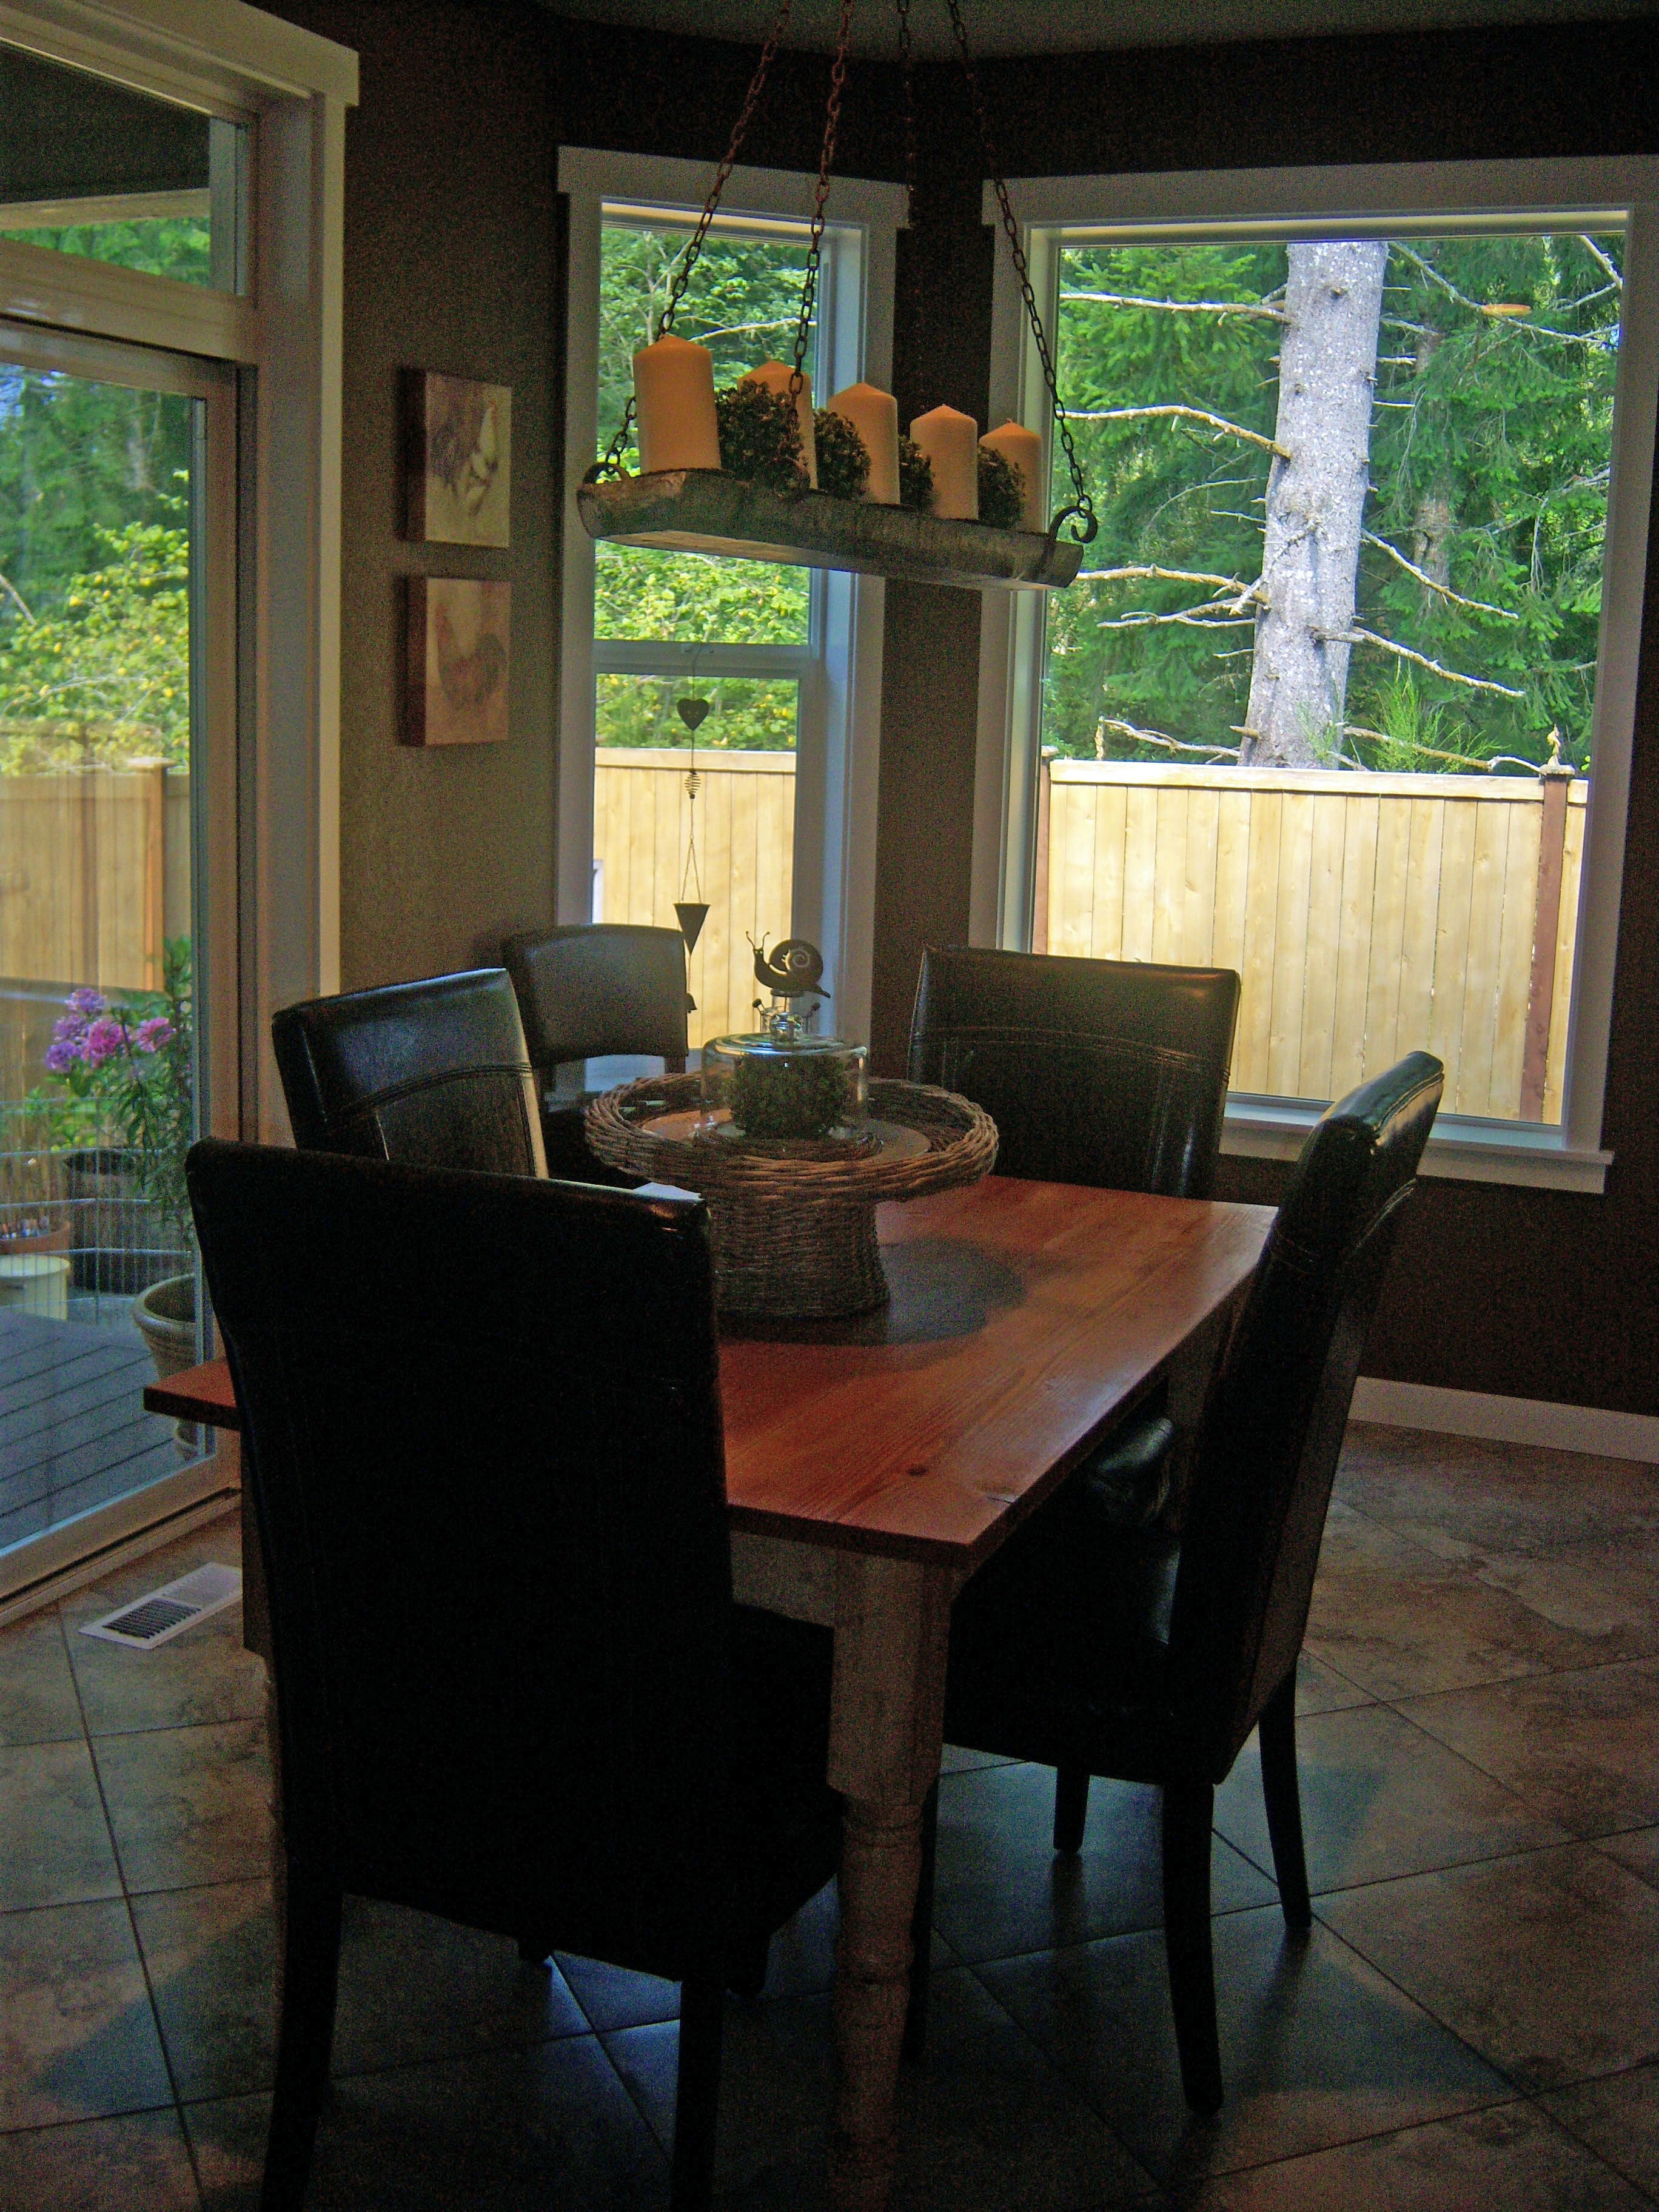 my kitchen nook leather chairs from Pier 1